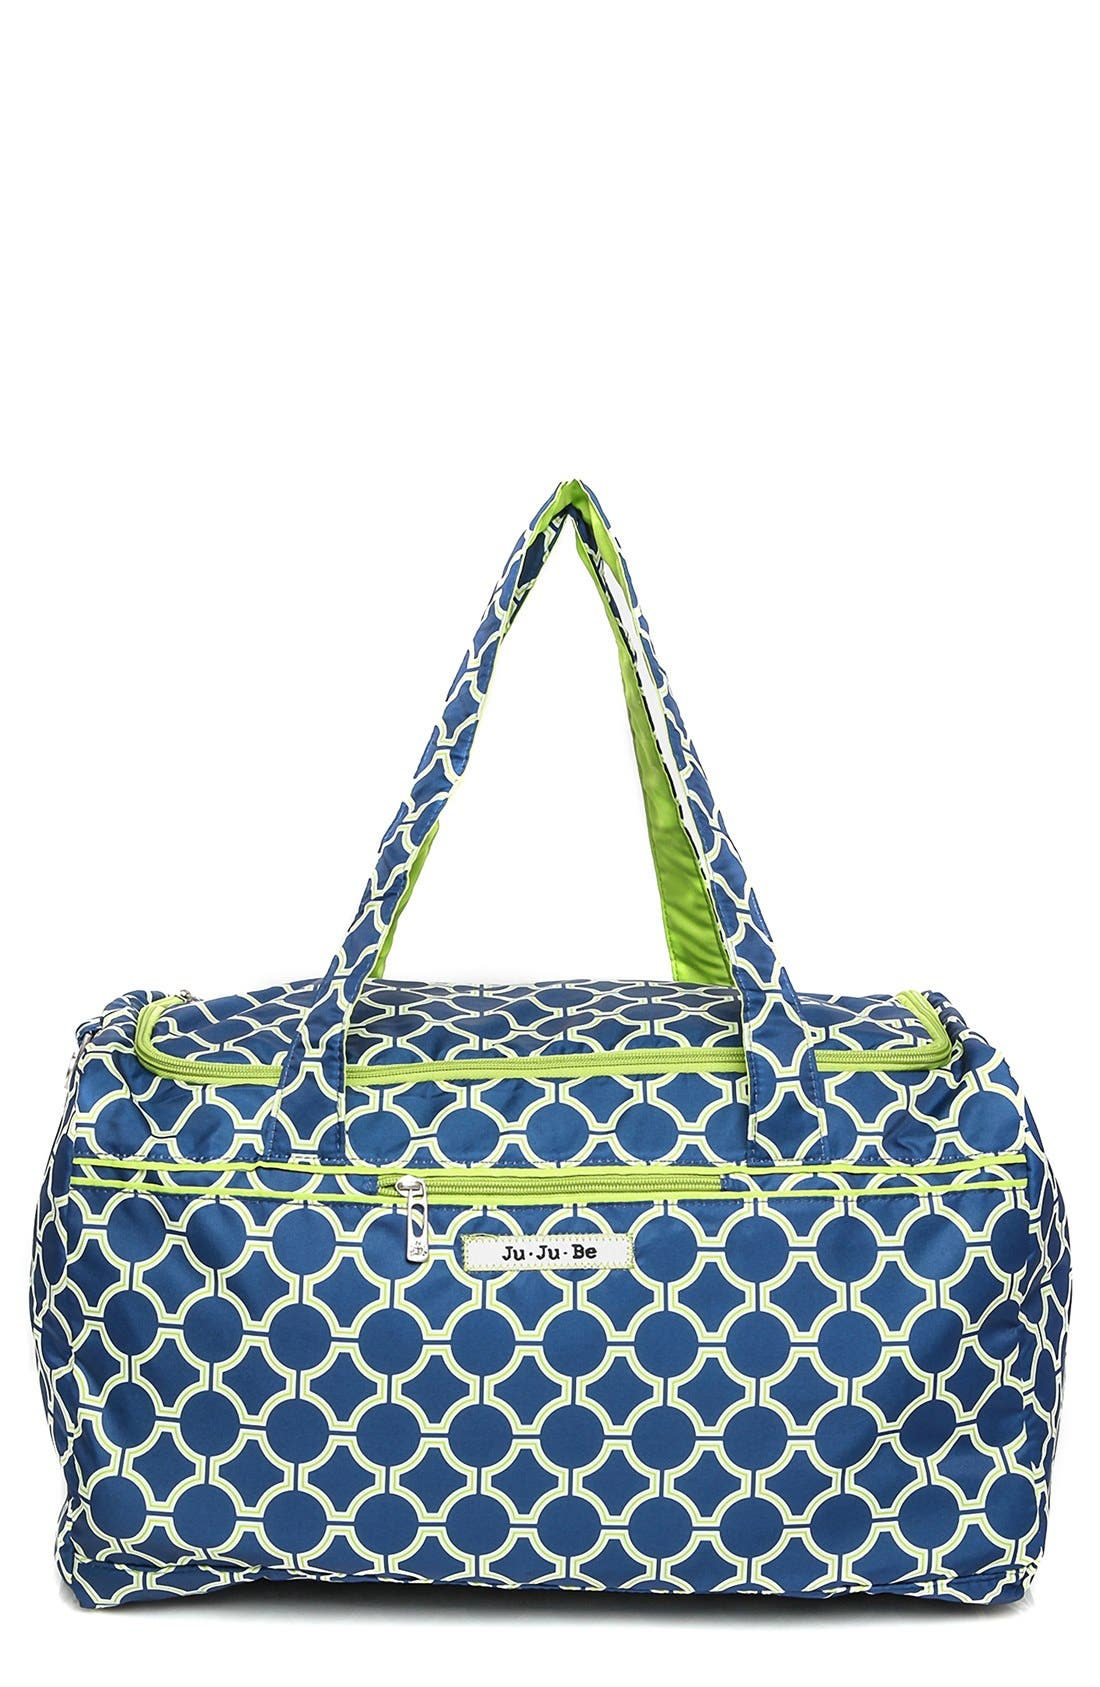 JU-JU-BE 'Super Star' Travel Diaper Bag